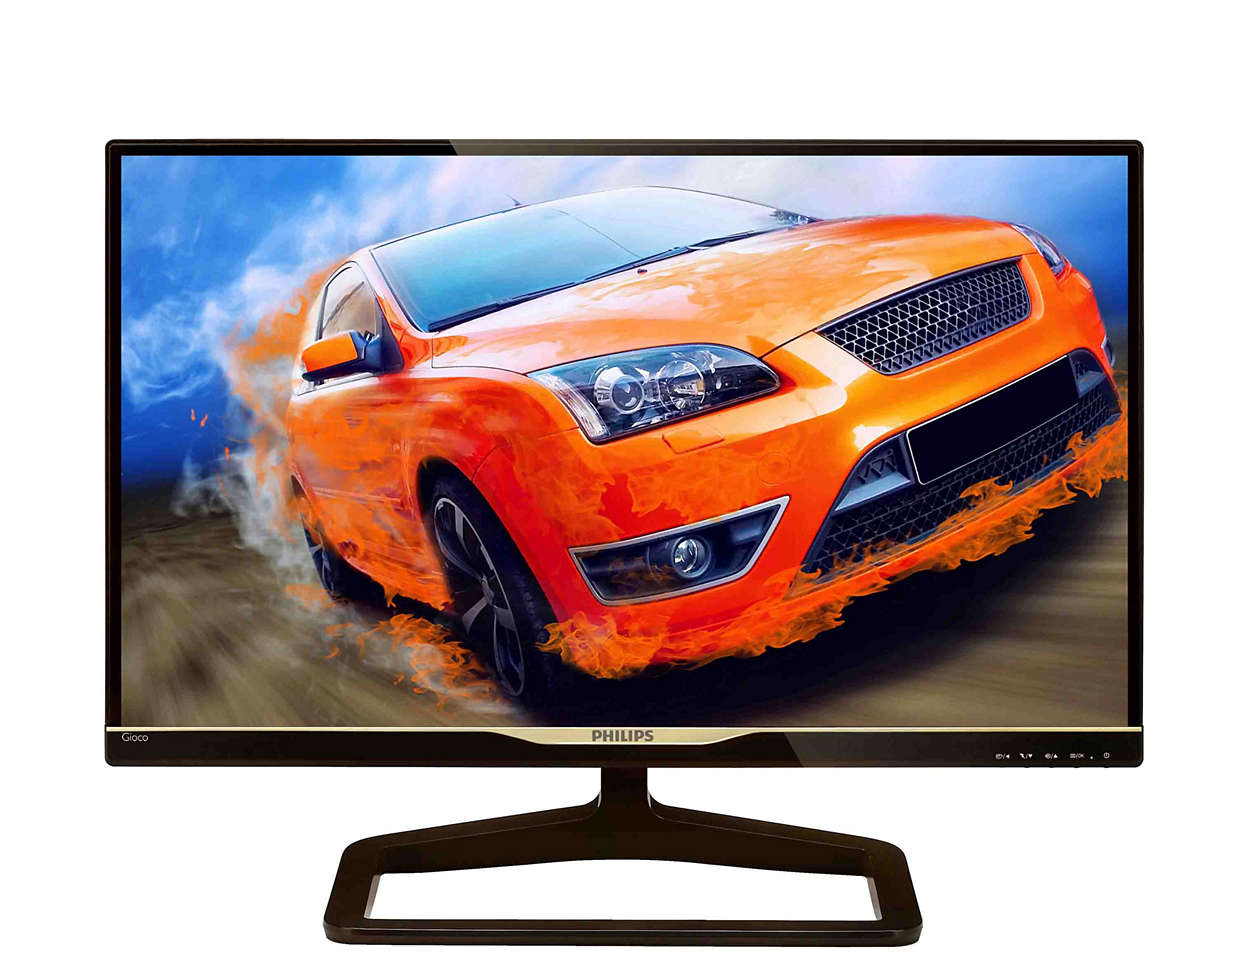 Stylish, high-performance display